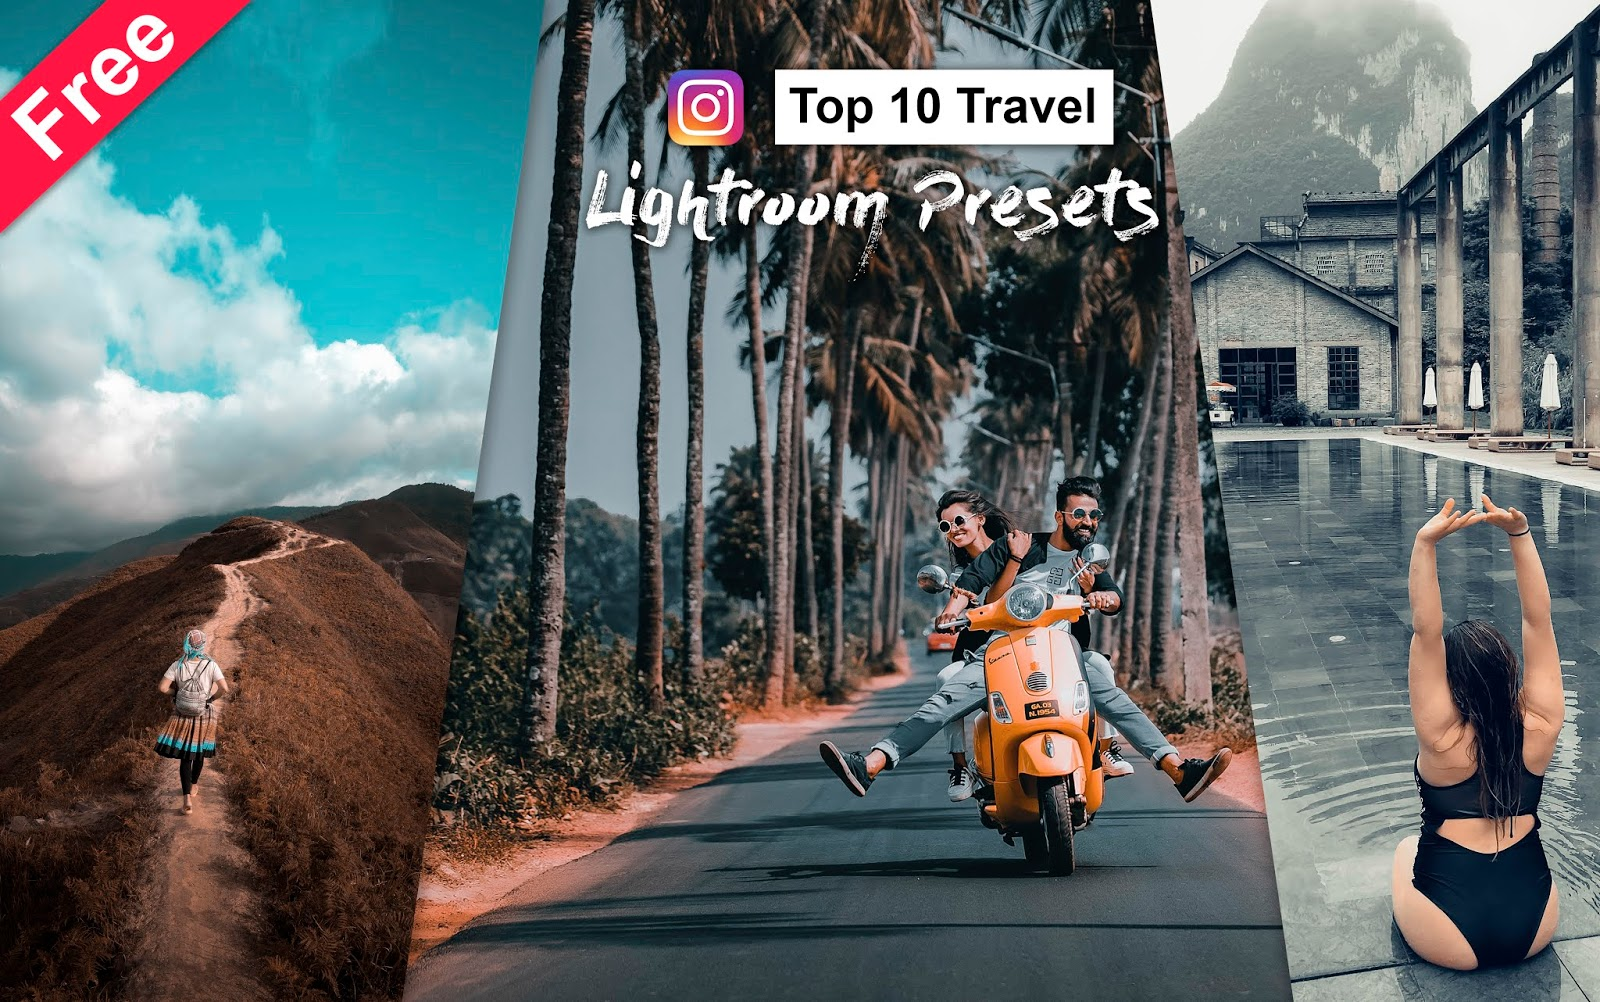 Download Top 10 Travel Lightroom Presets for Free | How to Edit Travel Photos Like Instagram Trending Travel Photos